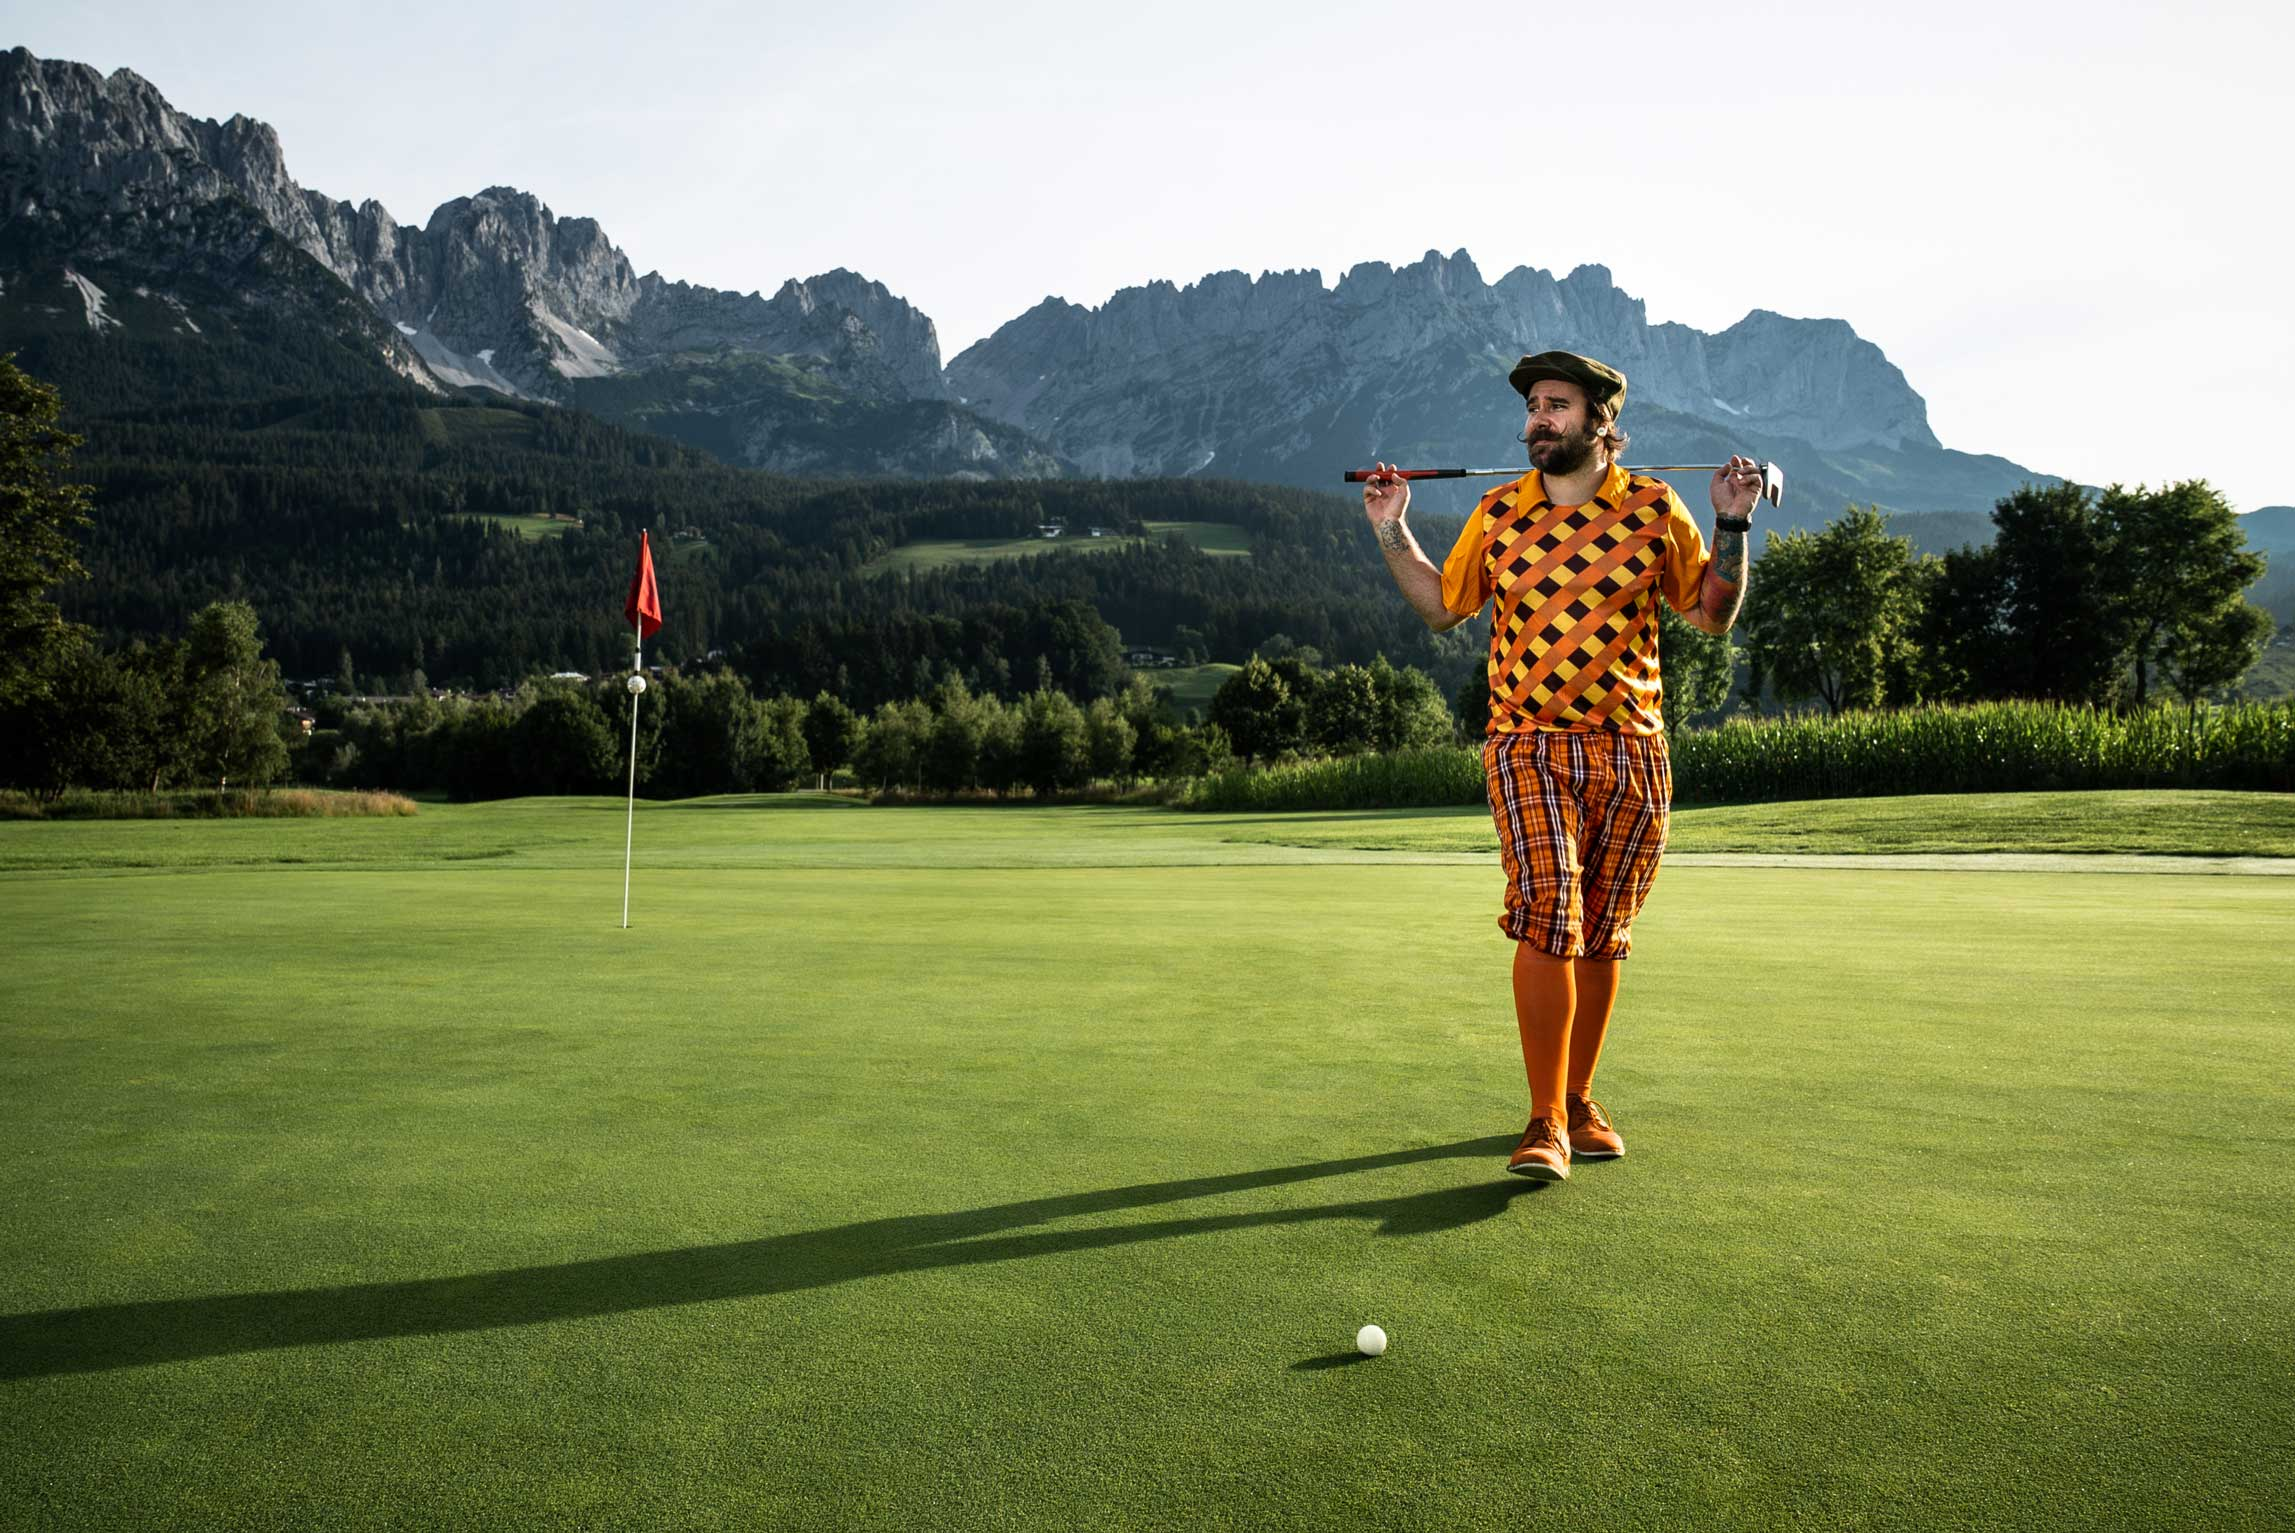 Golfer in extravagantem Outfit am Green.